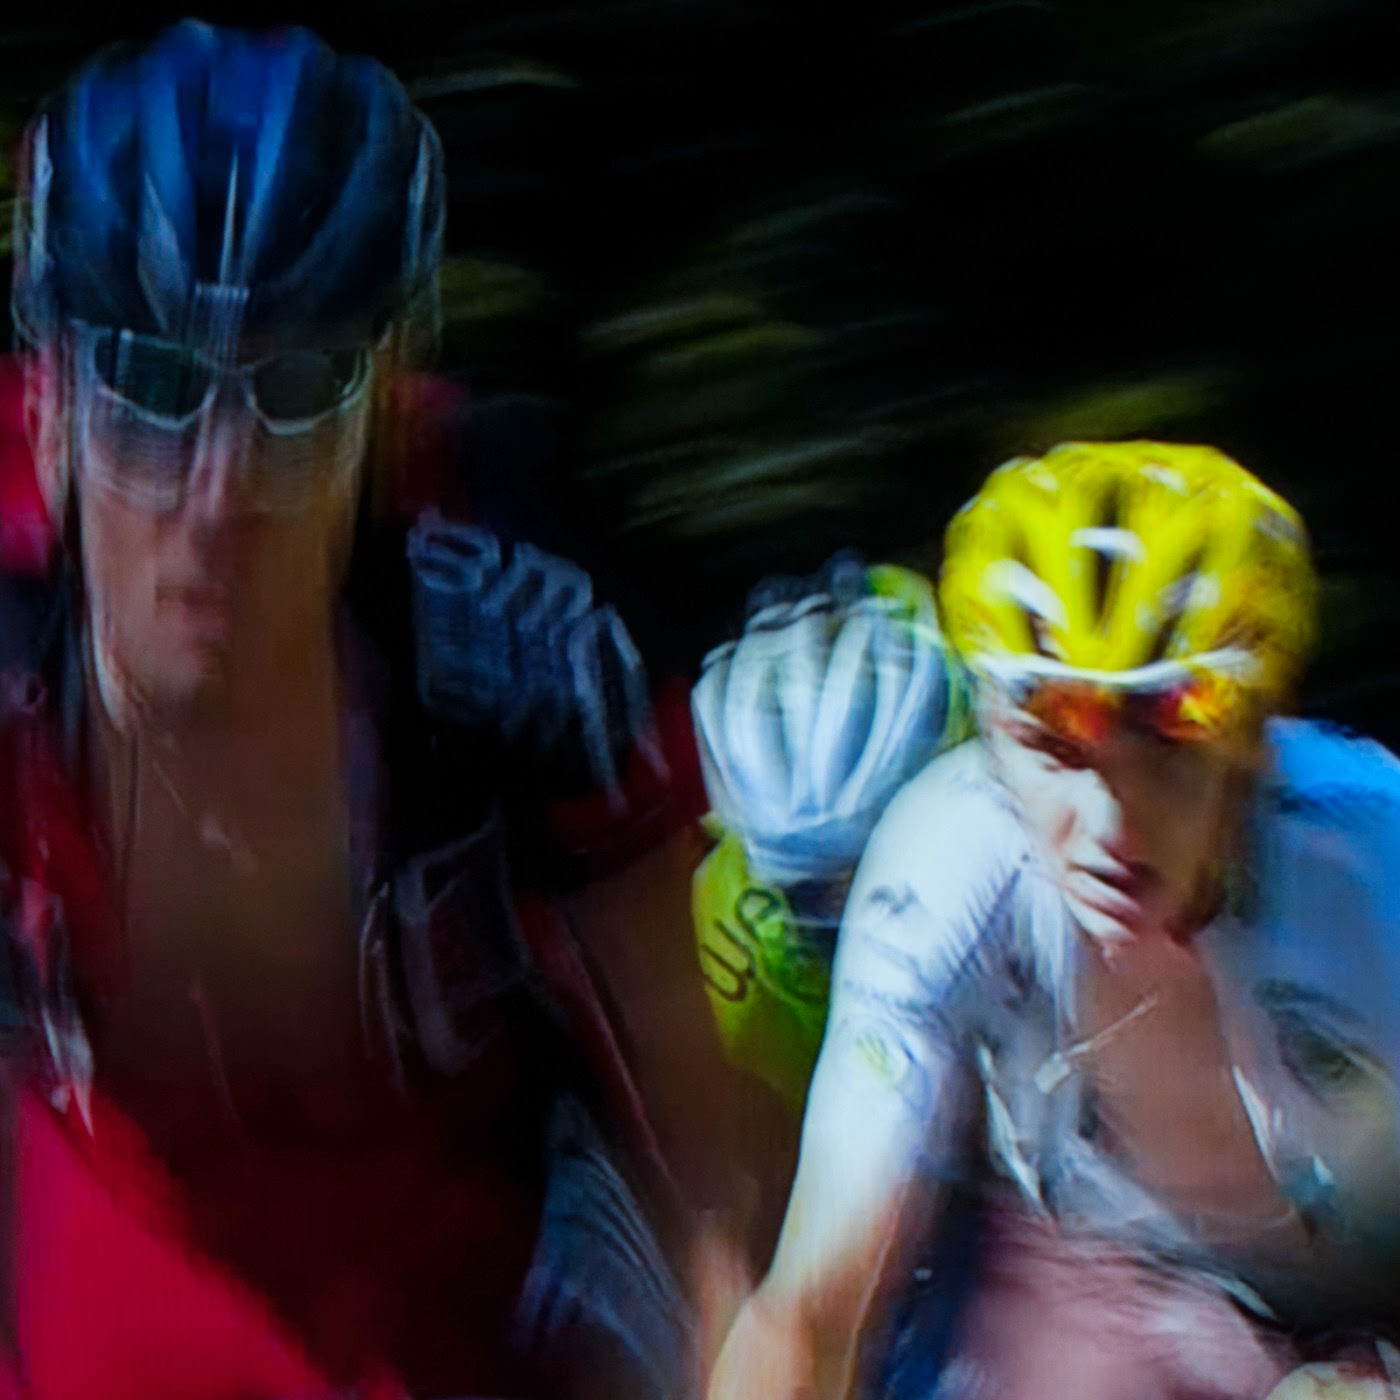 le tour, motion blur, blur, abstract, abstraction, tim macauley, photographic art, you won't see this at MoMA, appropriation, found imagery, le tour 2014, tv footage, portrait